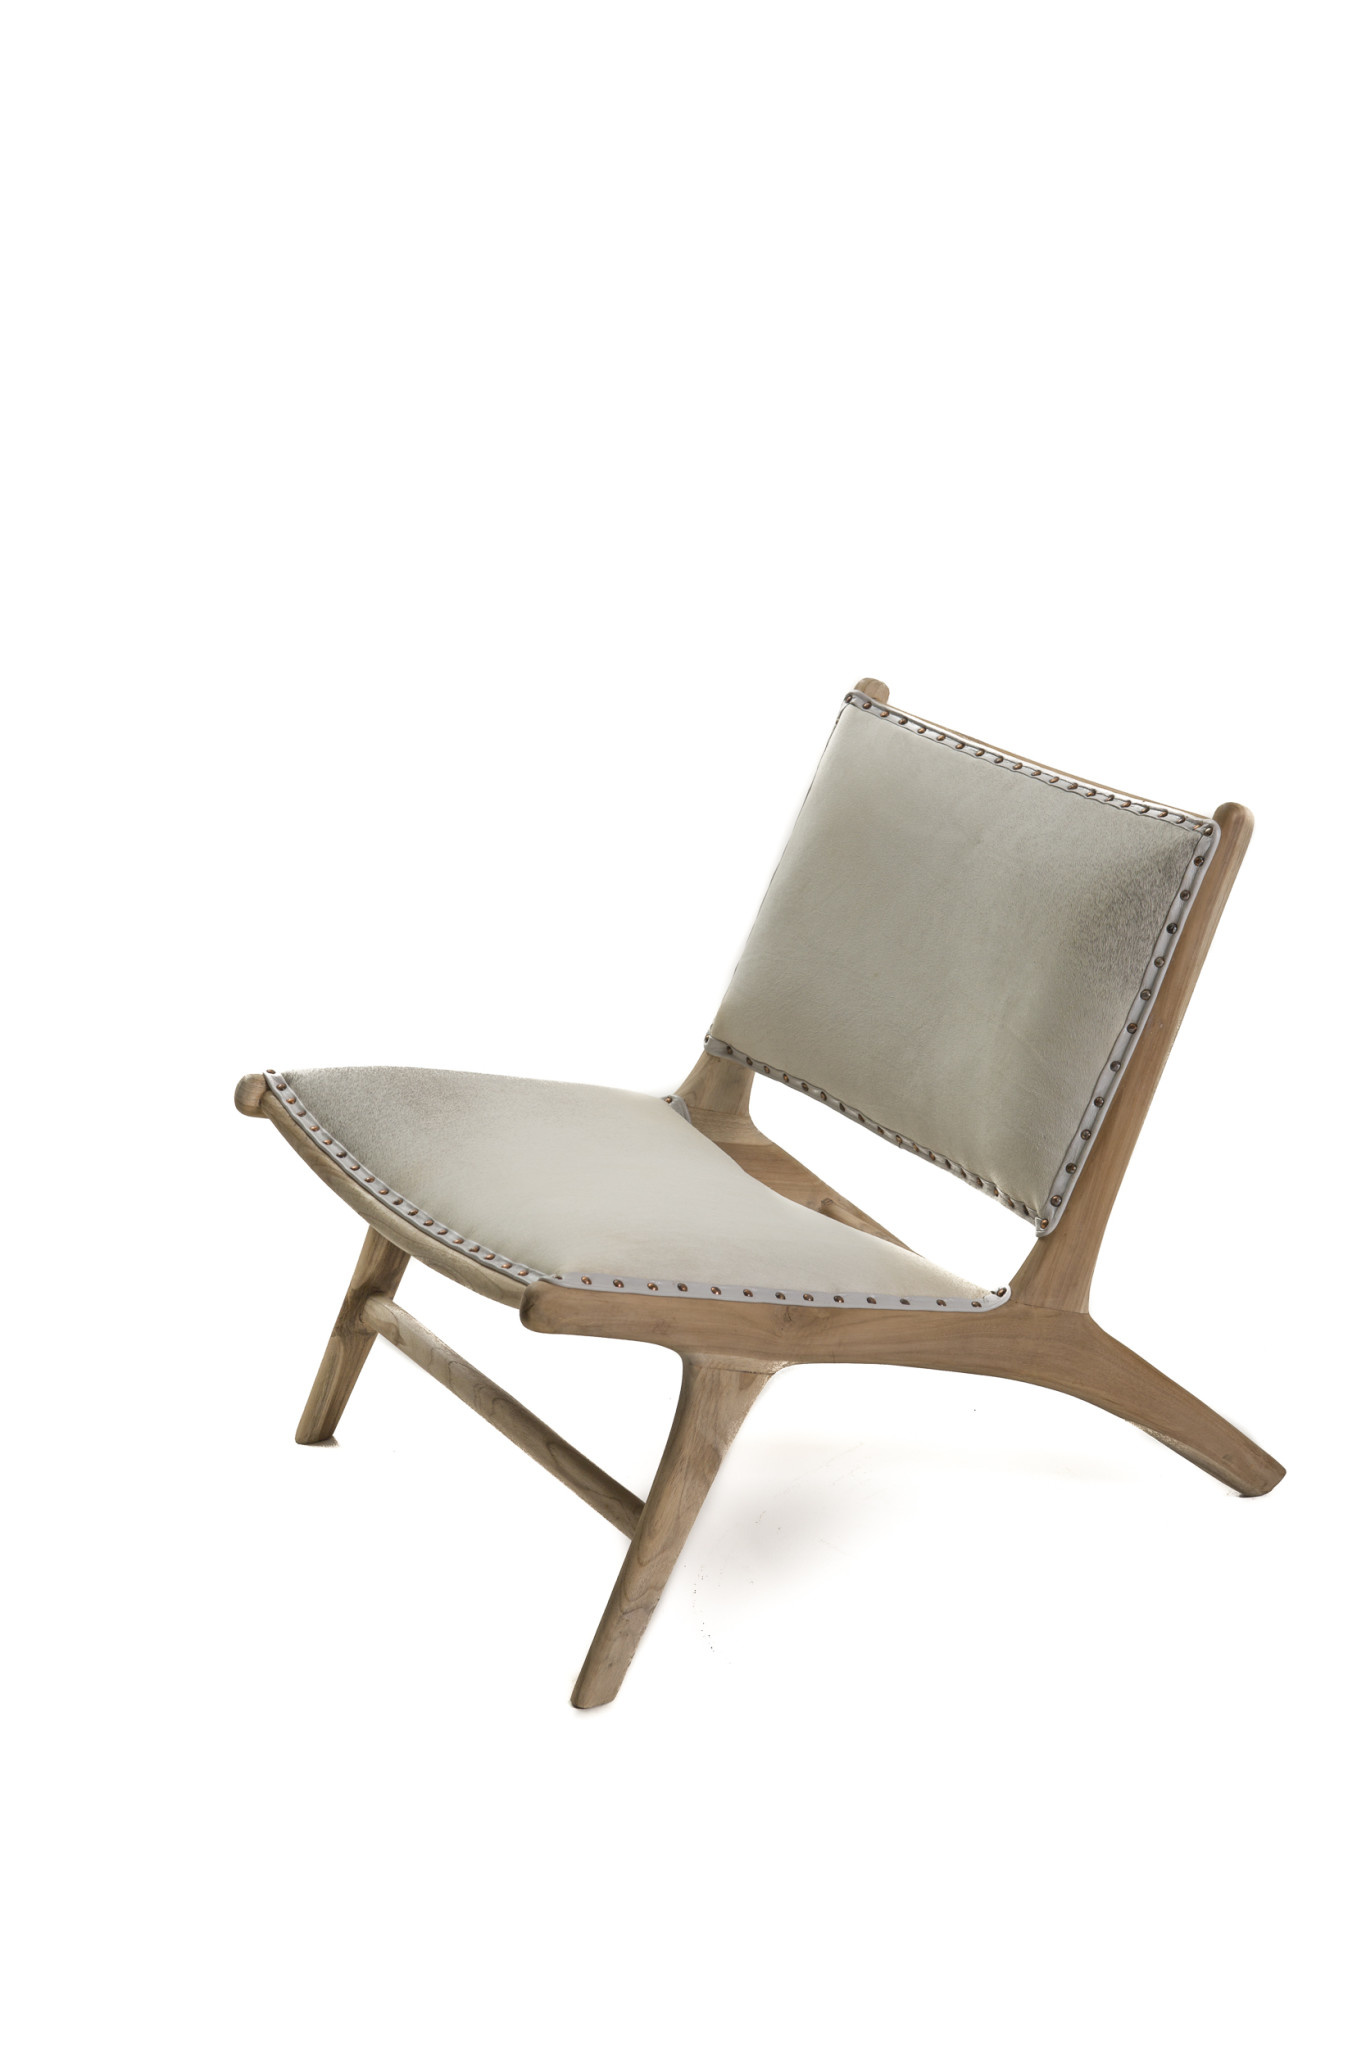 Lage Lounge Stoel.Couleur Locale Monroe Lounge Chair White Cowhide White Wash